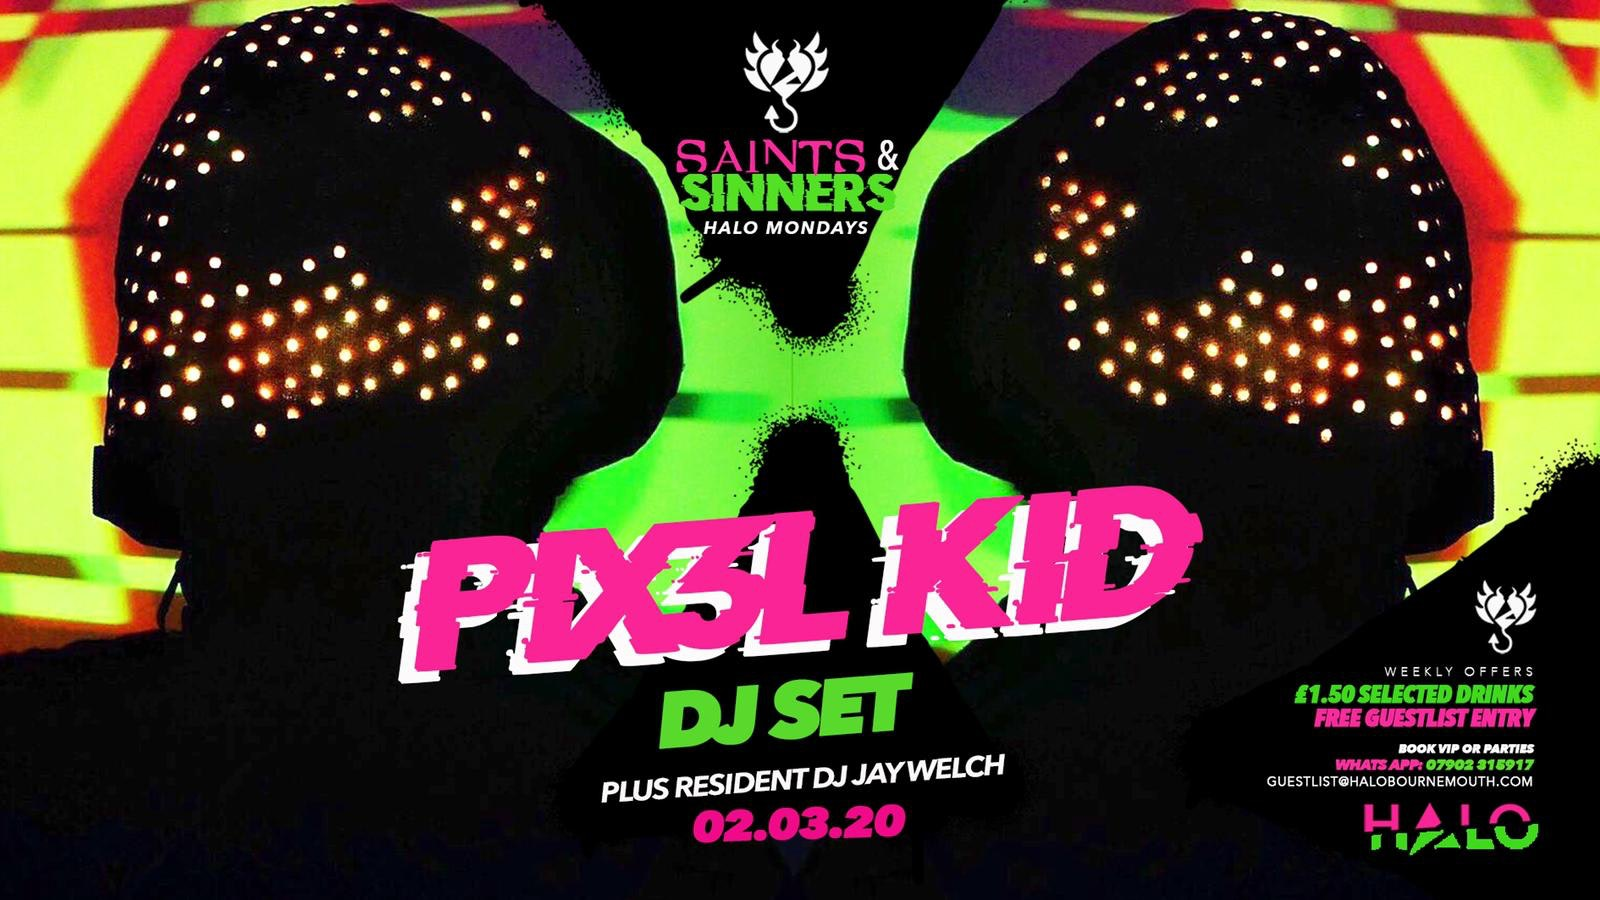 Halo Mondays 02.03 / Saints & Sinners with PIX3L KID //// Drinks from £1.50 – Bournemouth's Biggest Student Night // Bournemouth Freshers